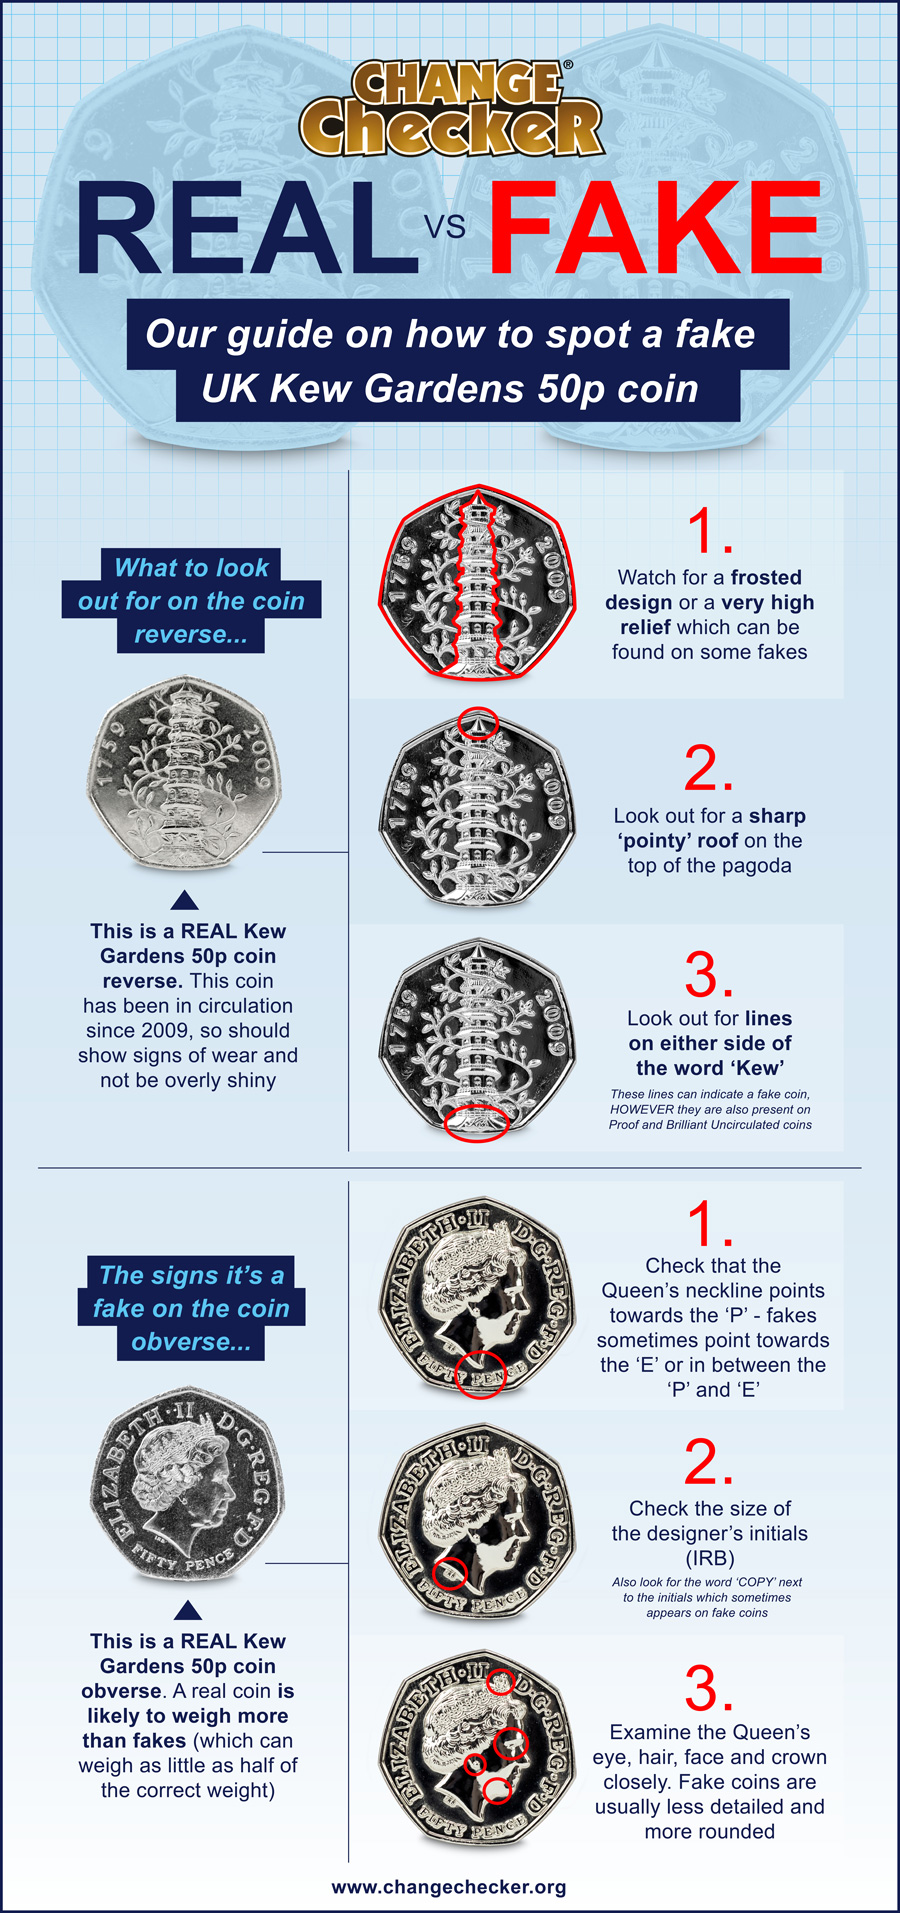 Real, Fake and Re-issued... The inside story on the Kew Gardens 50p!